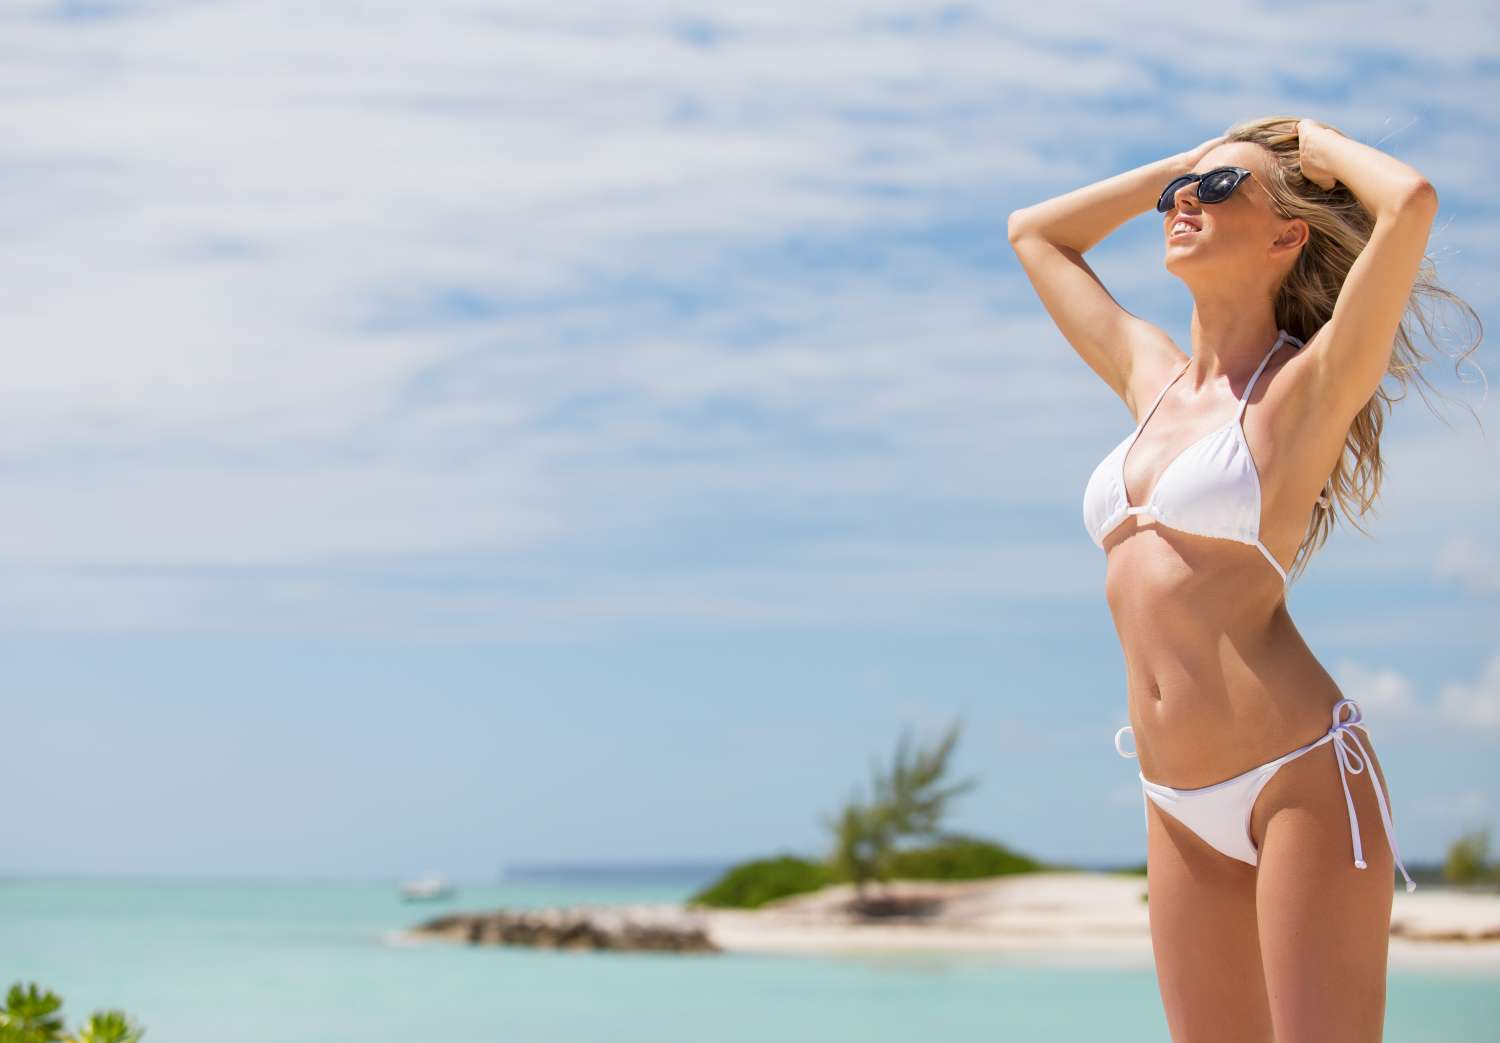 Numbness of the abdomen after a tummy tuck